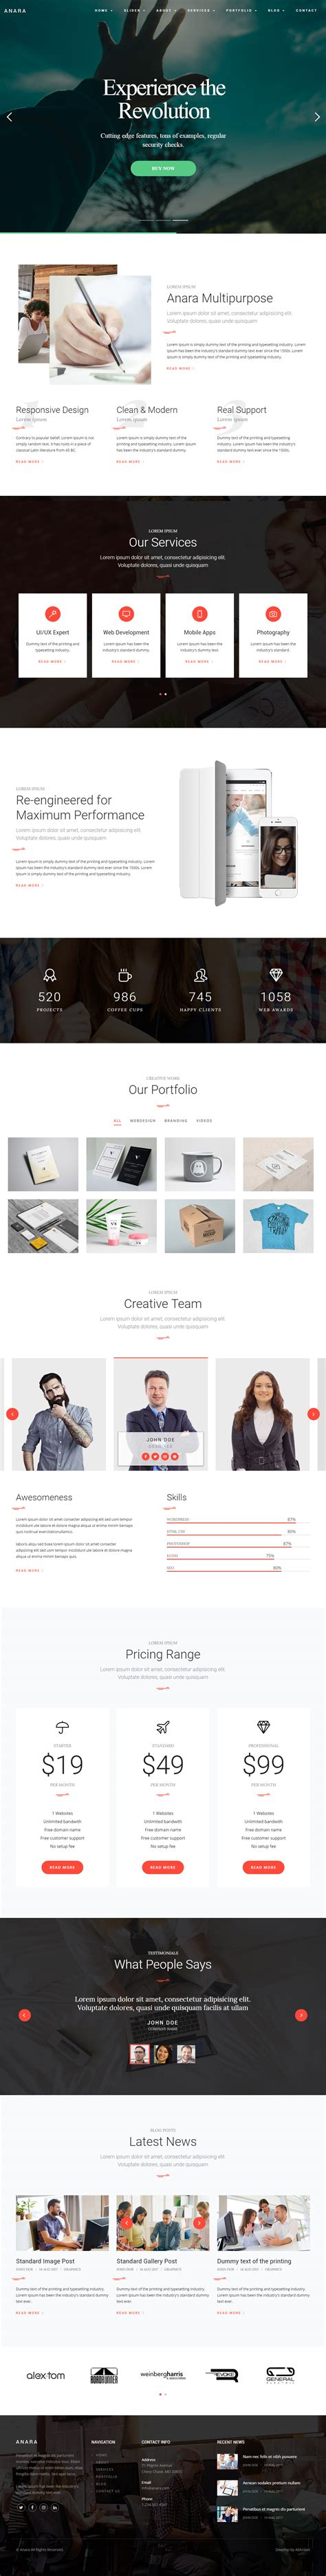 15 Latest Html5 Corporate Website Templates 2018 Responsive Miracle Best Html5 Templates 2018